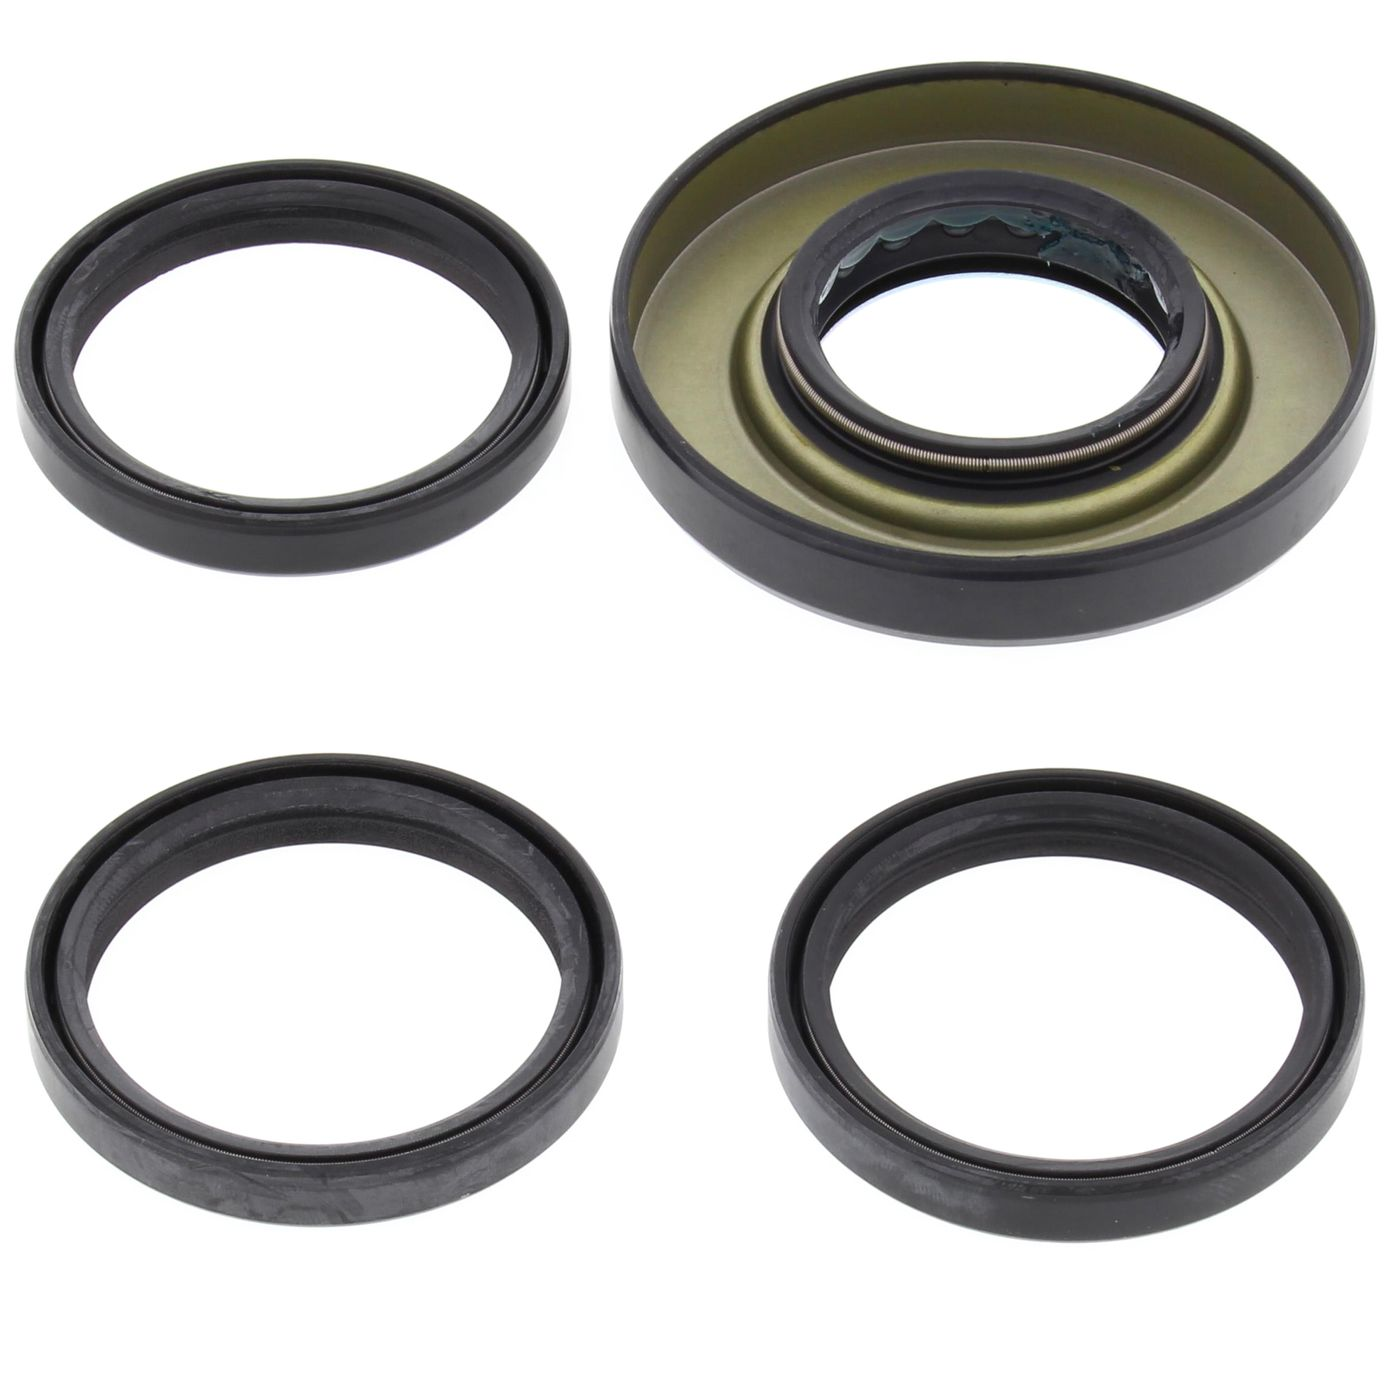 Wrp Diff Seal Kits - WRP252009-5 image